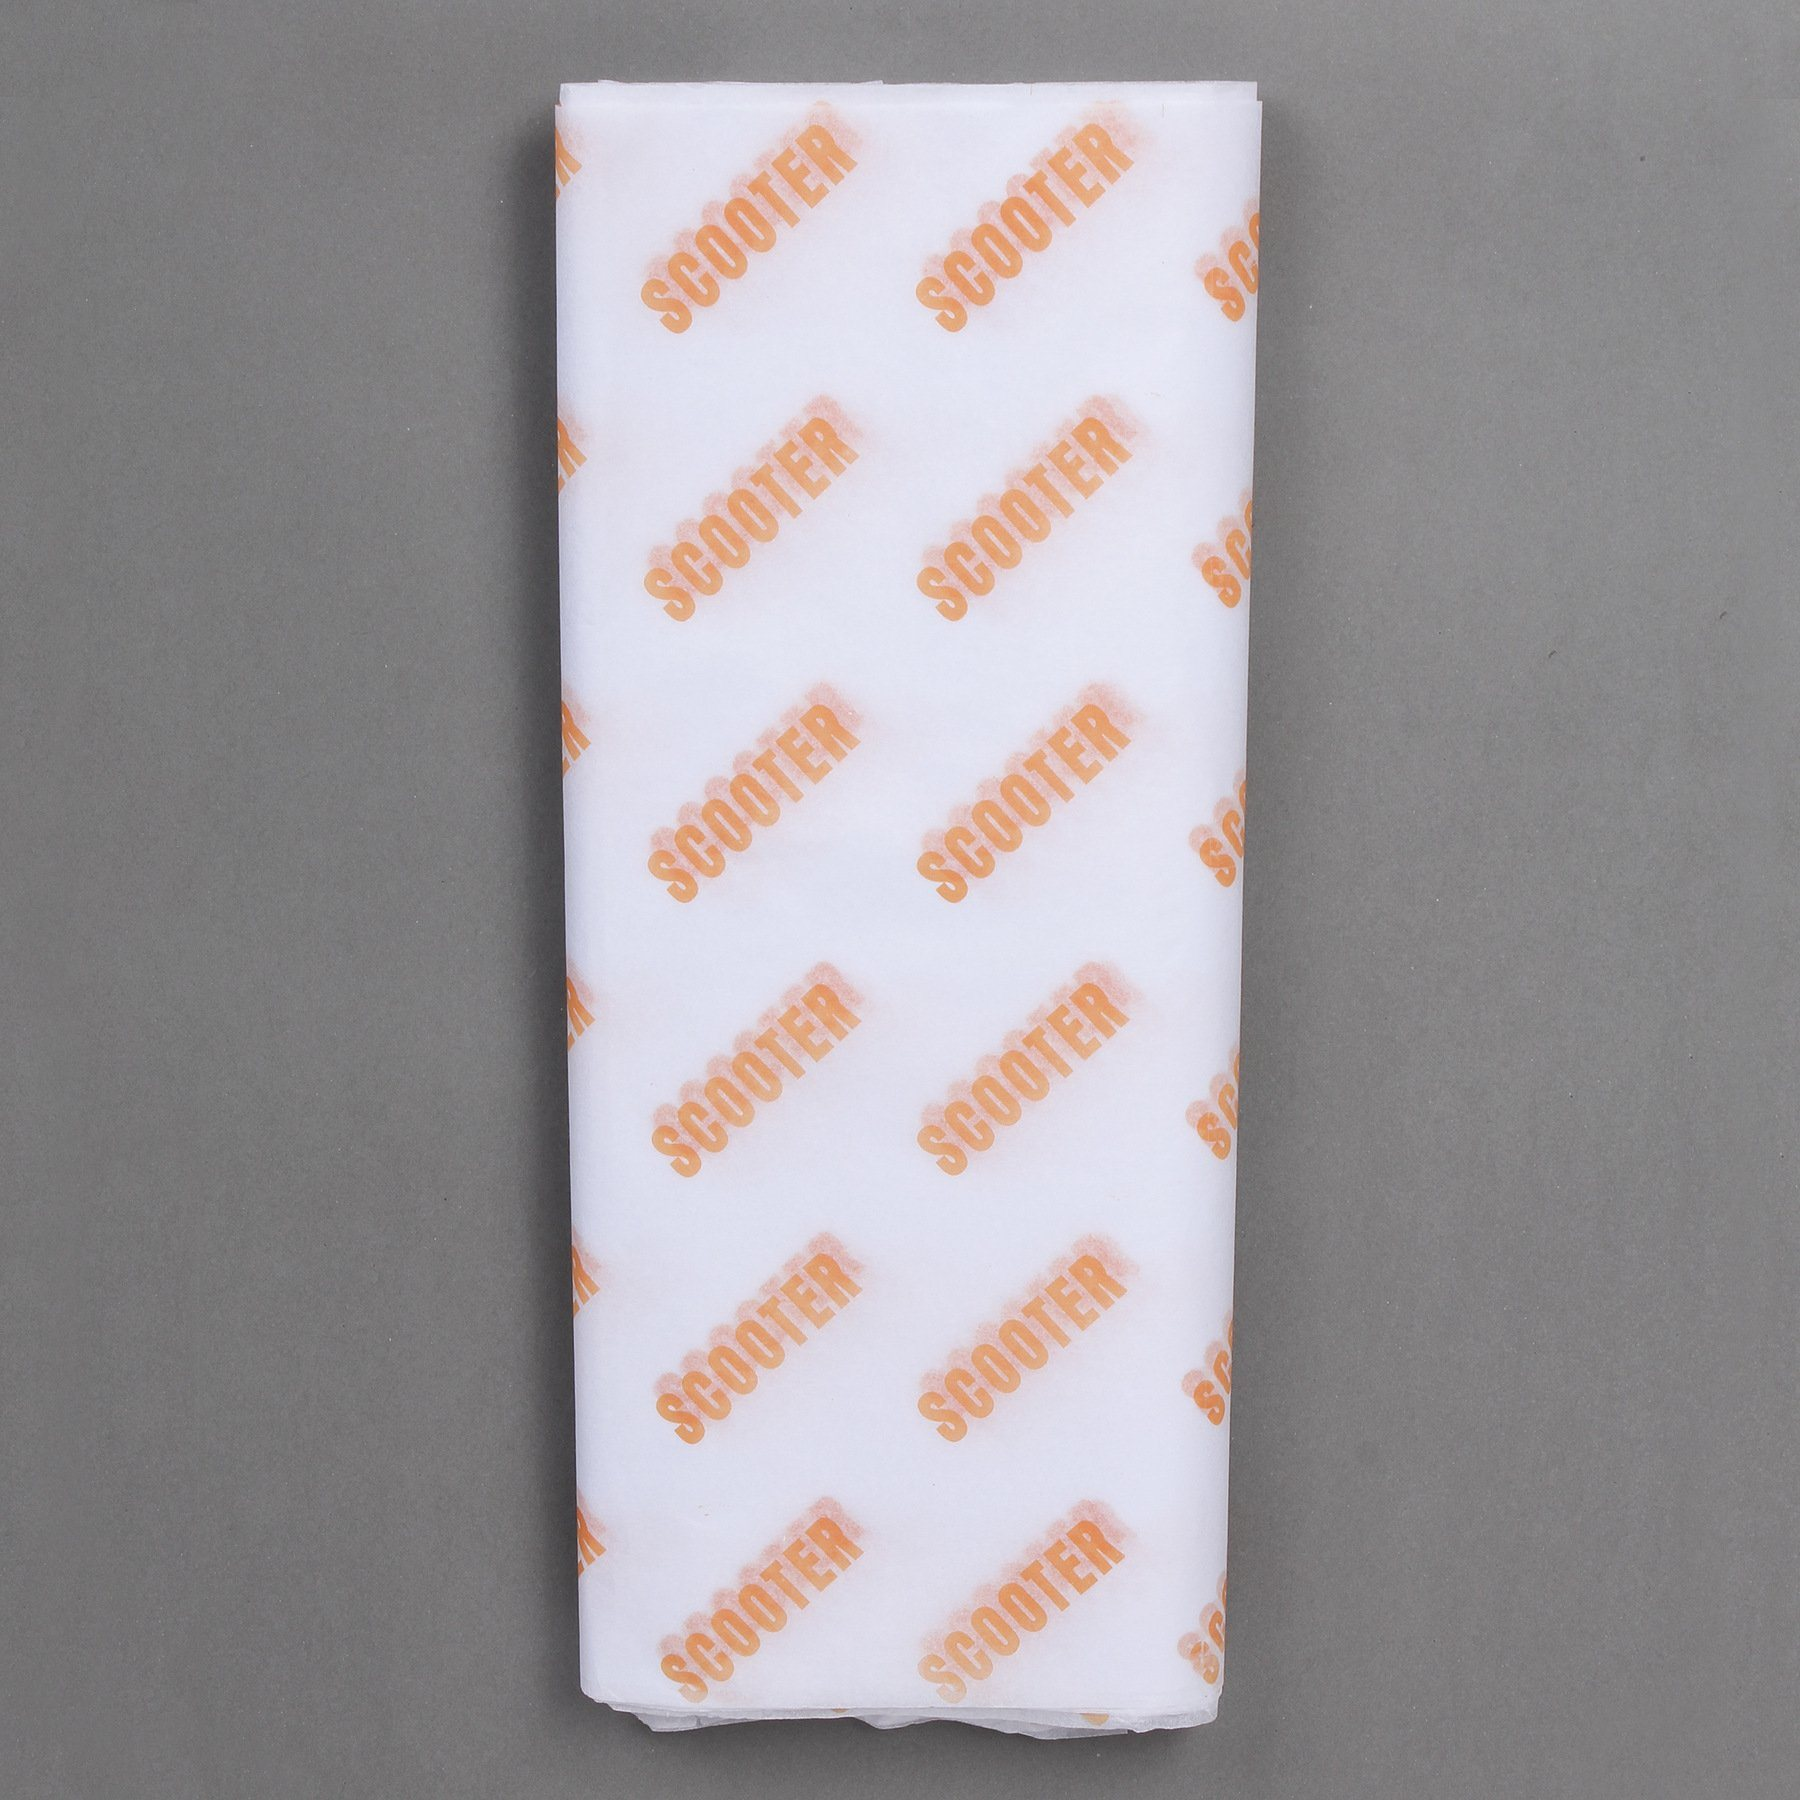 Customized Printed Wrapping Tissue Paper 17GSM Tissue Paper